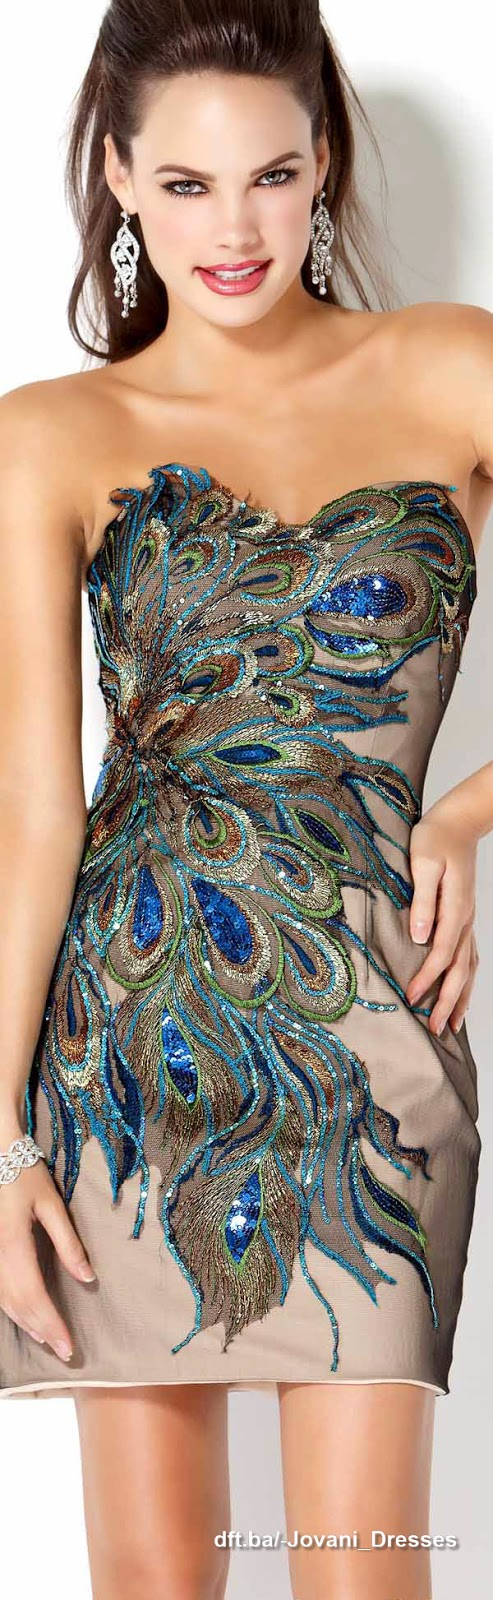 Jovani Dresses,Prom Dresses, Designer Dresses ,Evening Dresses, Evening Dress, Couture Dresses,short dresses